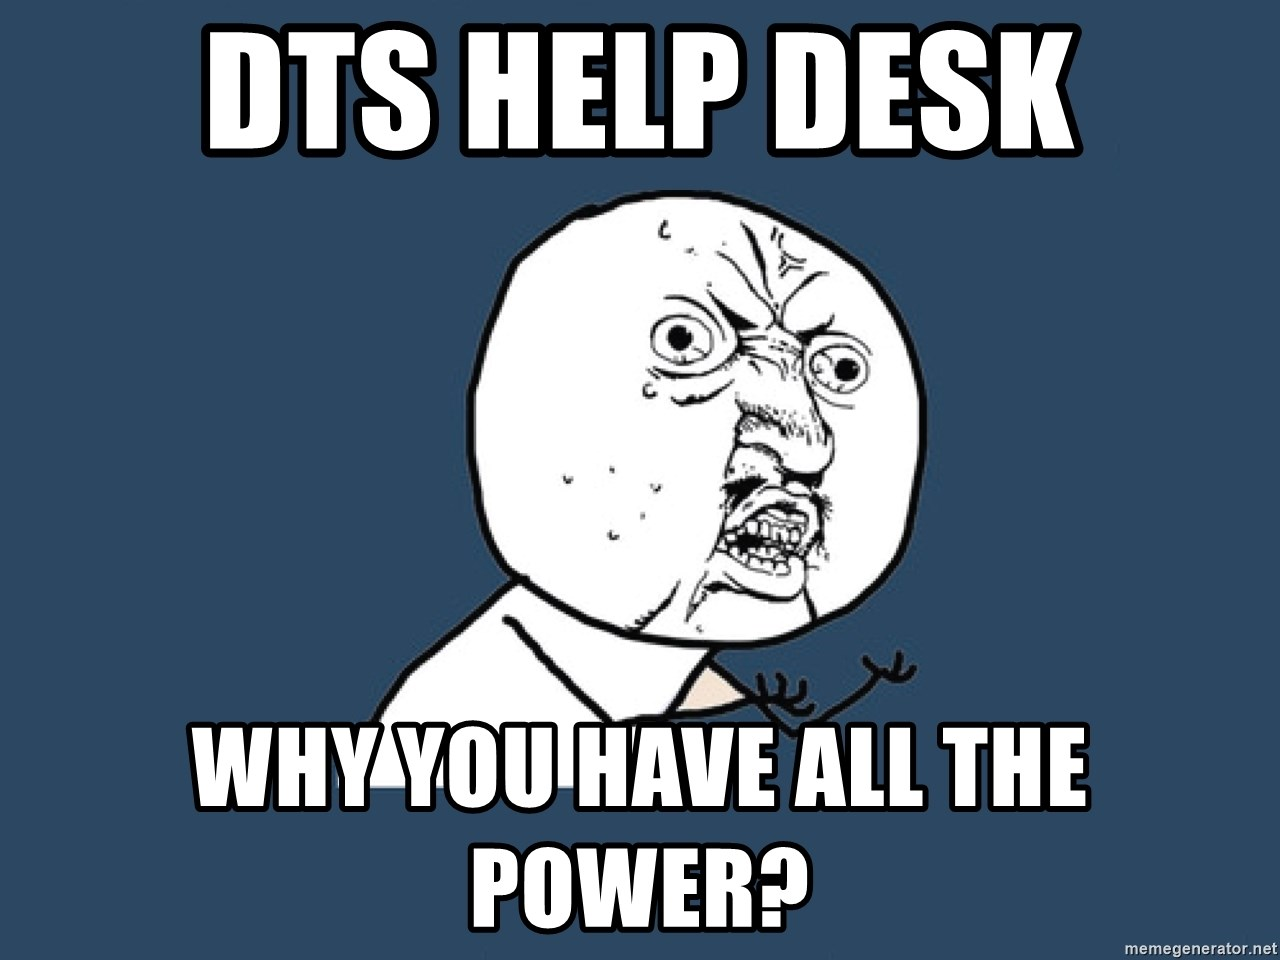 dts help desk why you have all the power? - y u no | meme generator